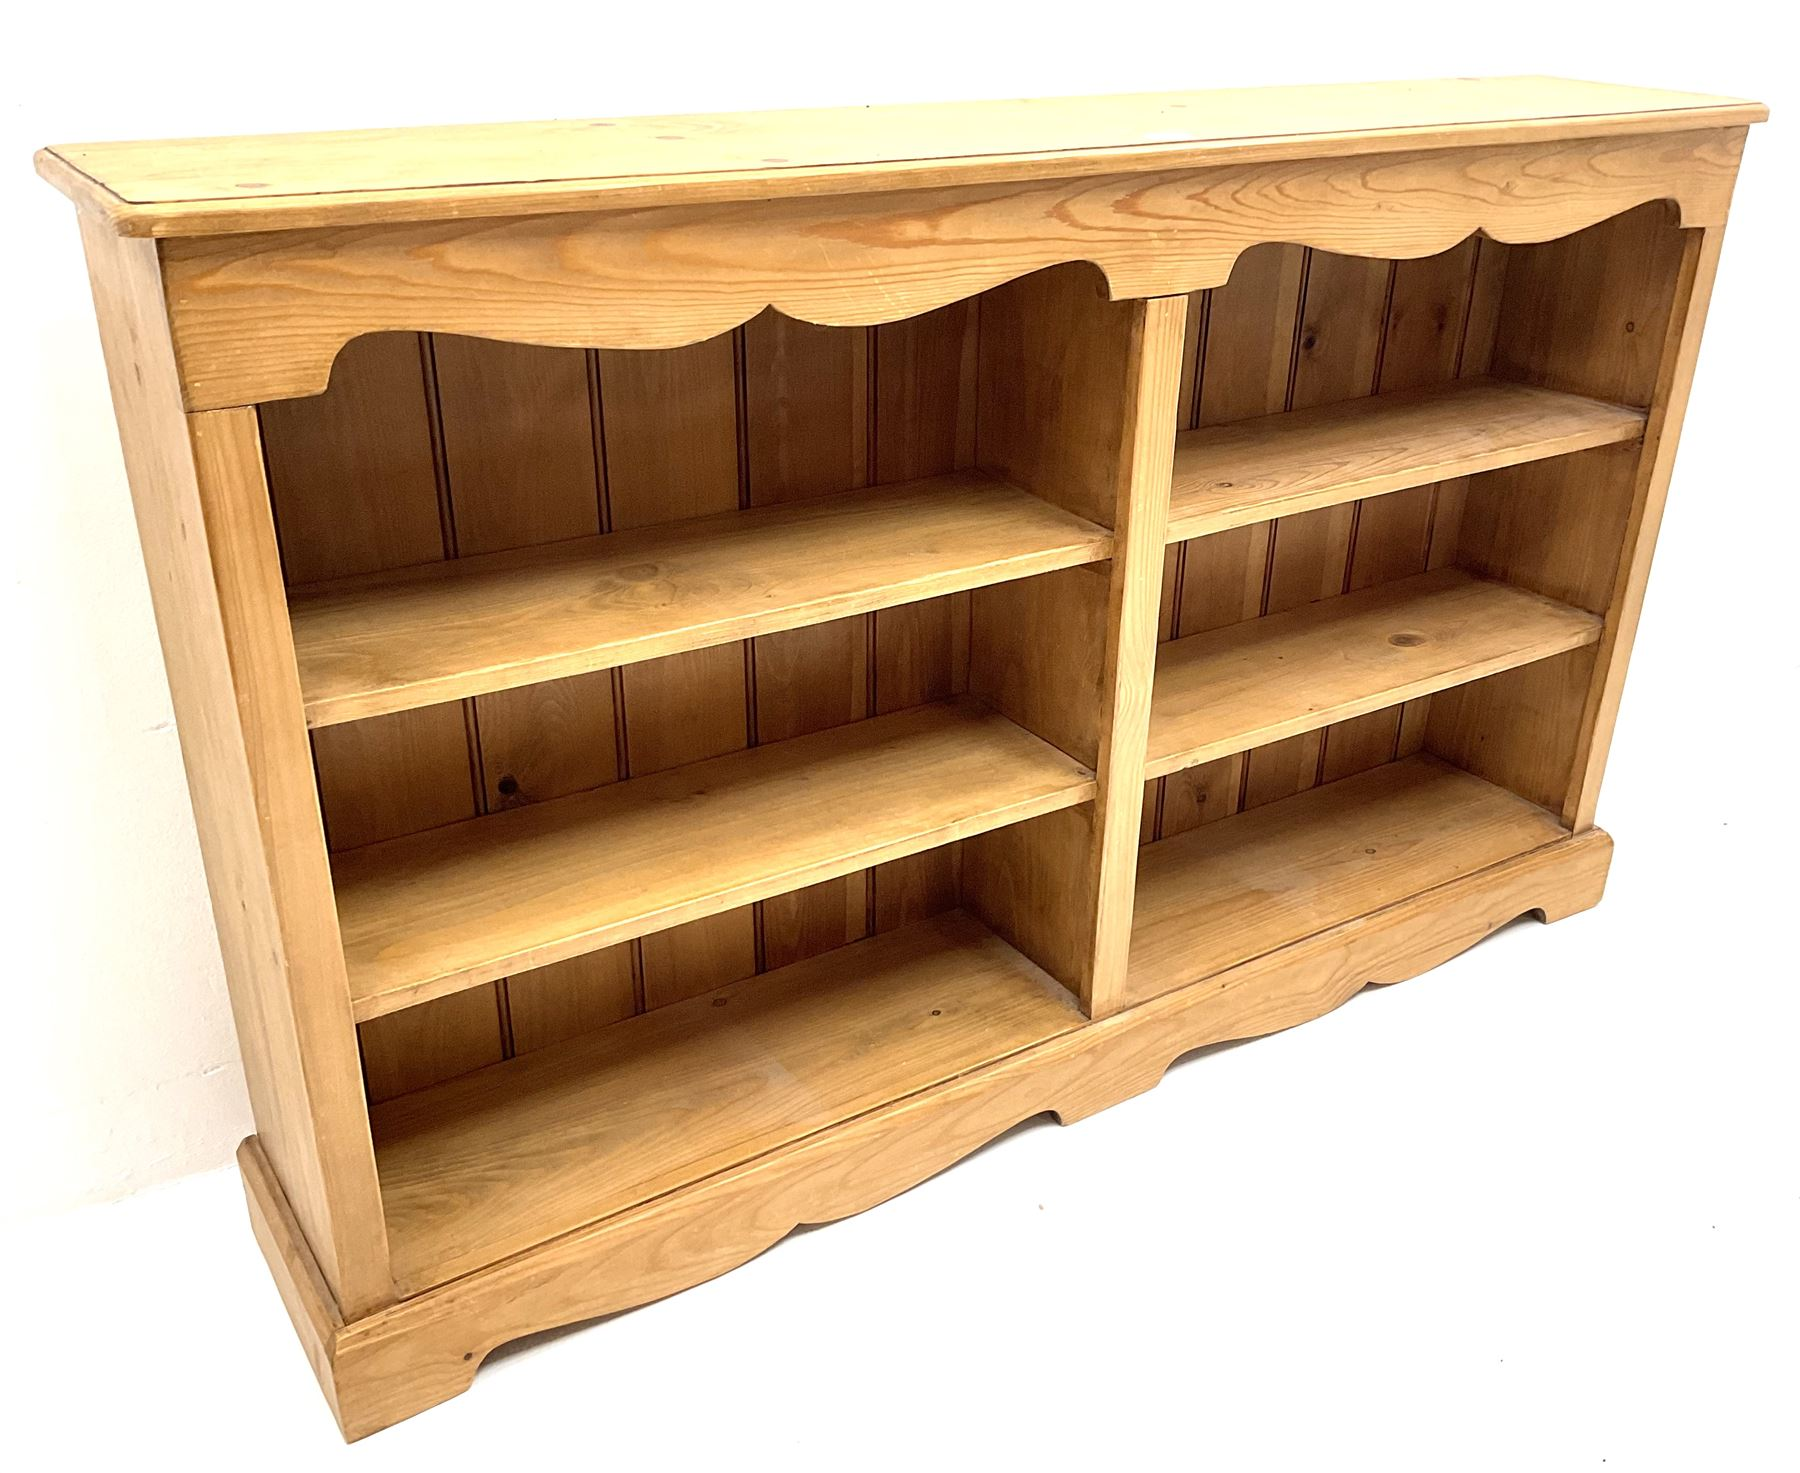 Solid pine low open bookcase - Image 2 of 3